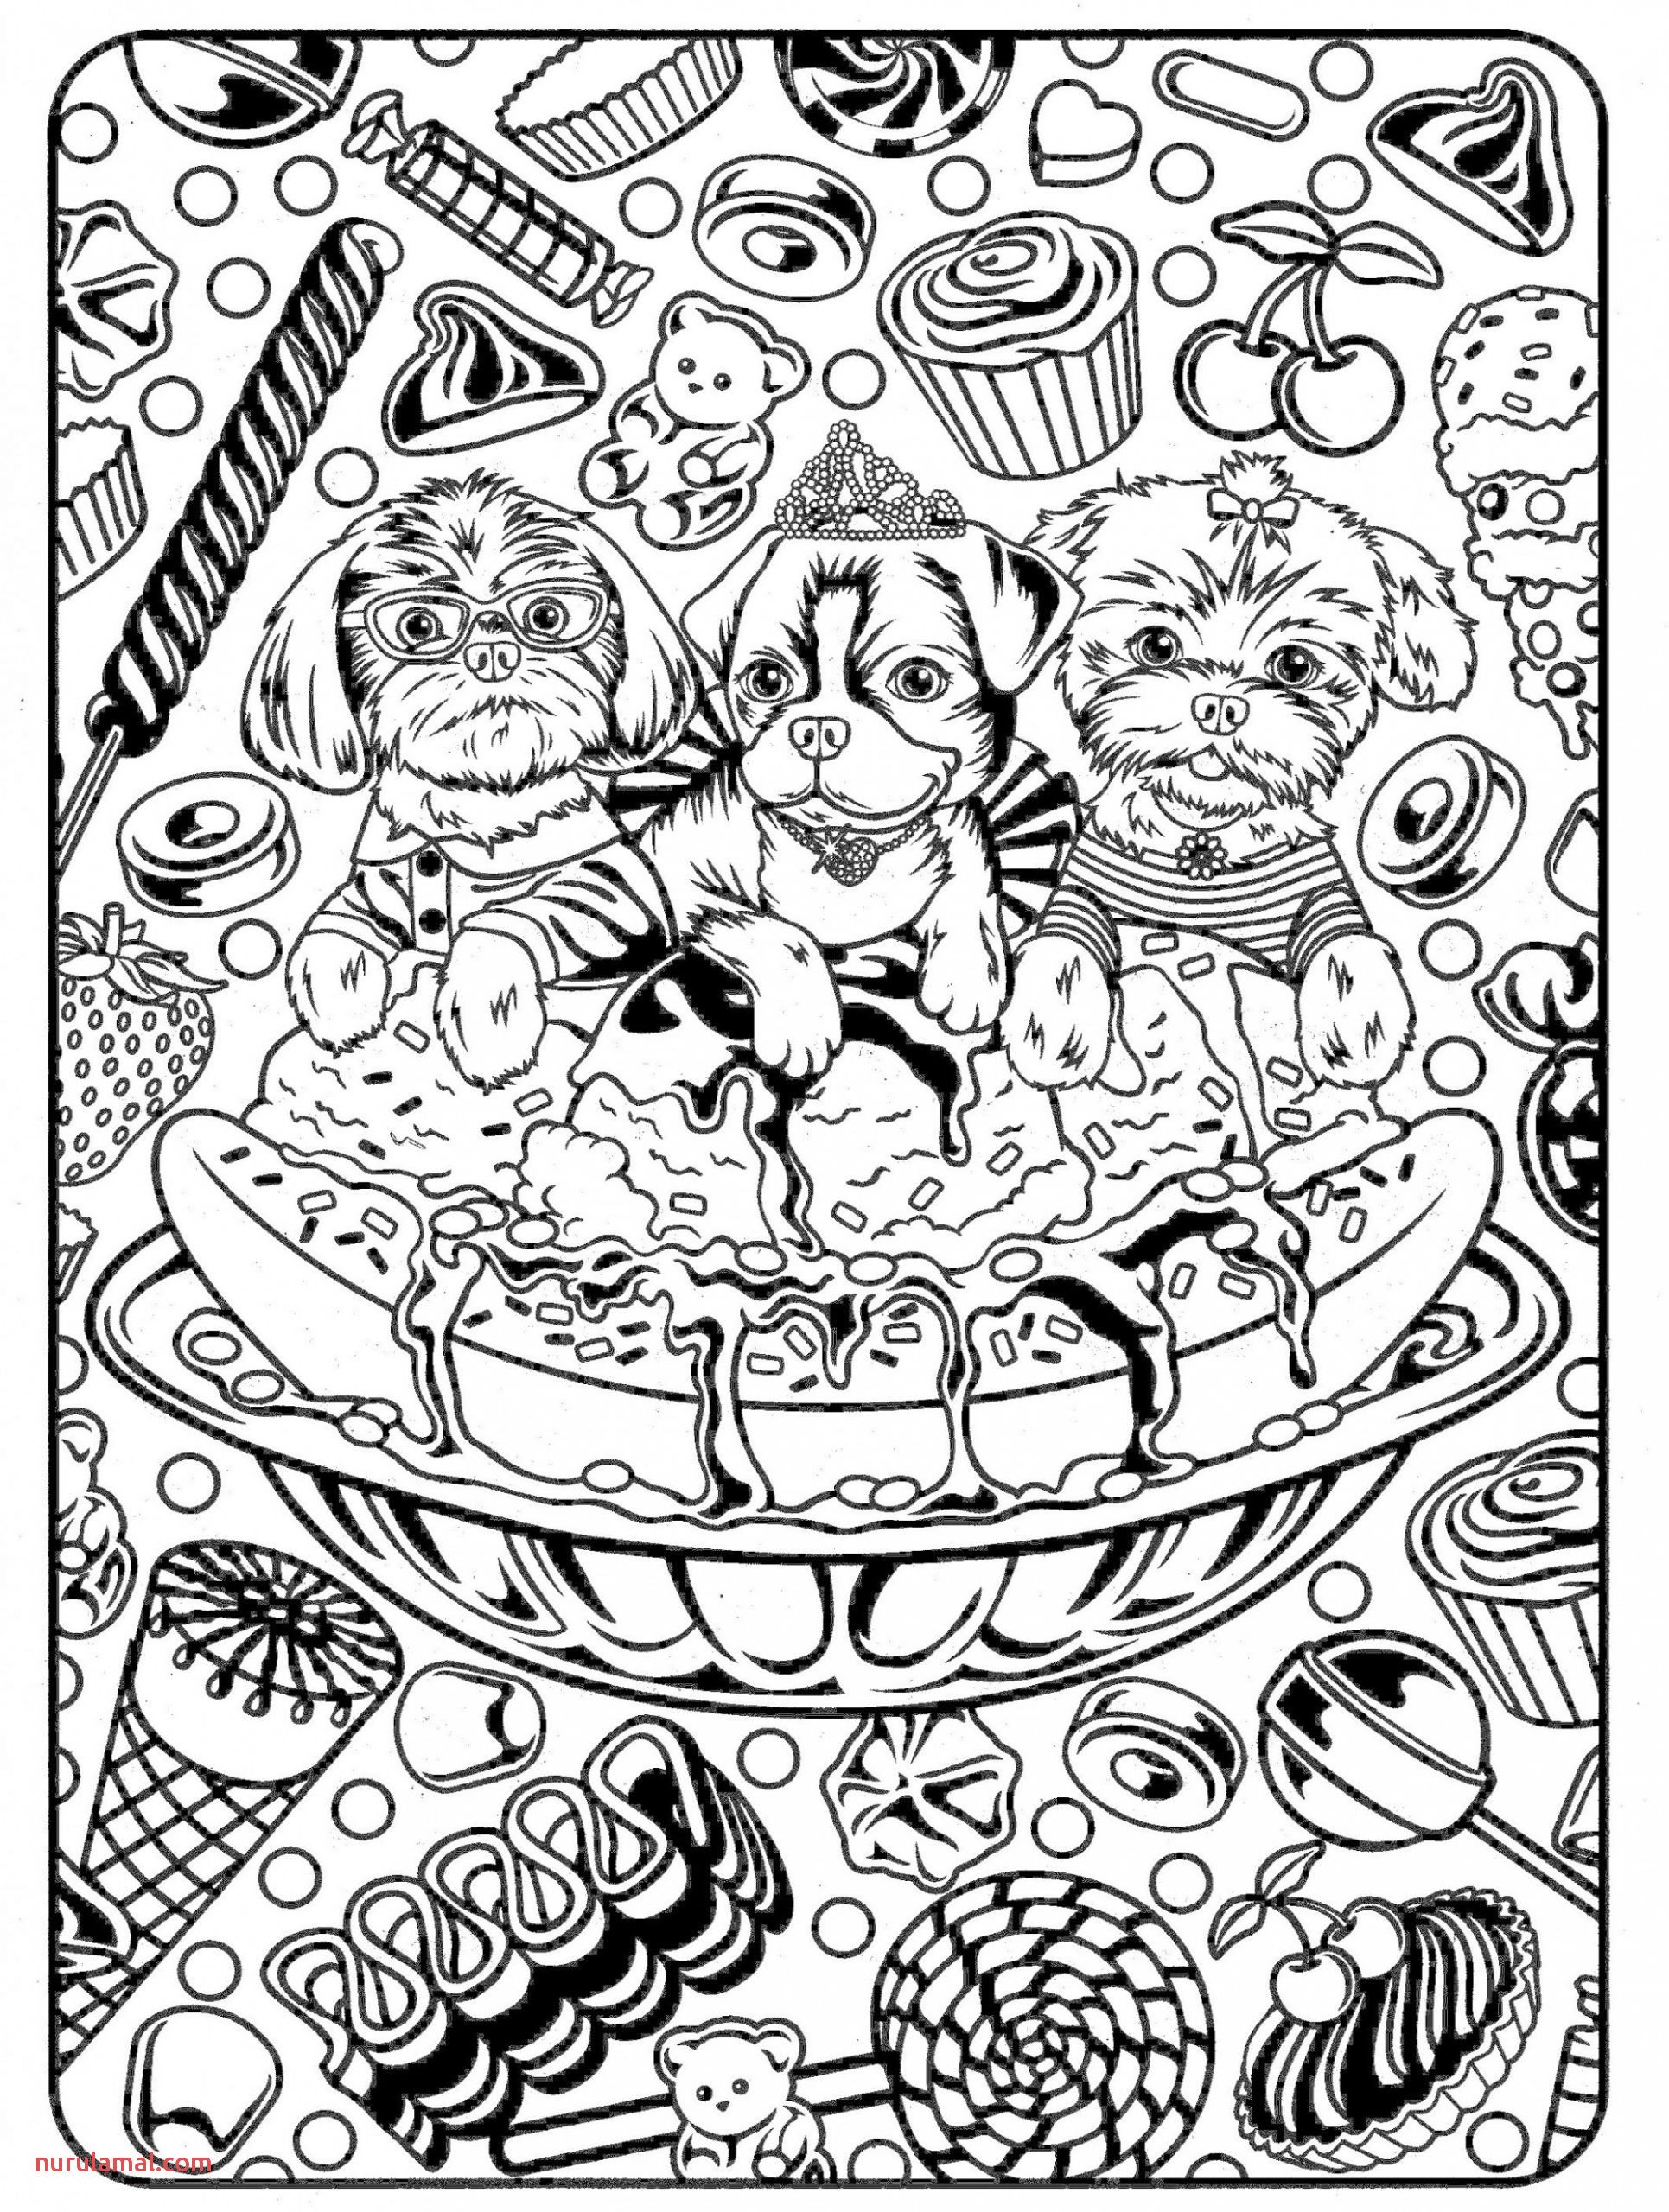 Emojis Coloring Pages Free Printable Coloring Pages with